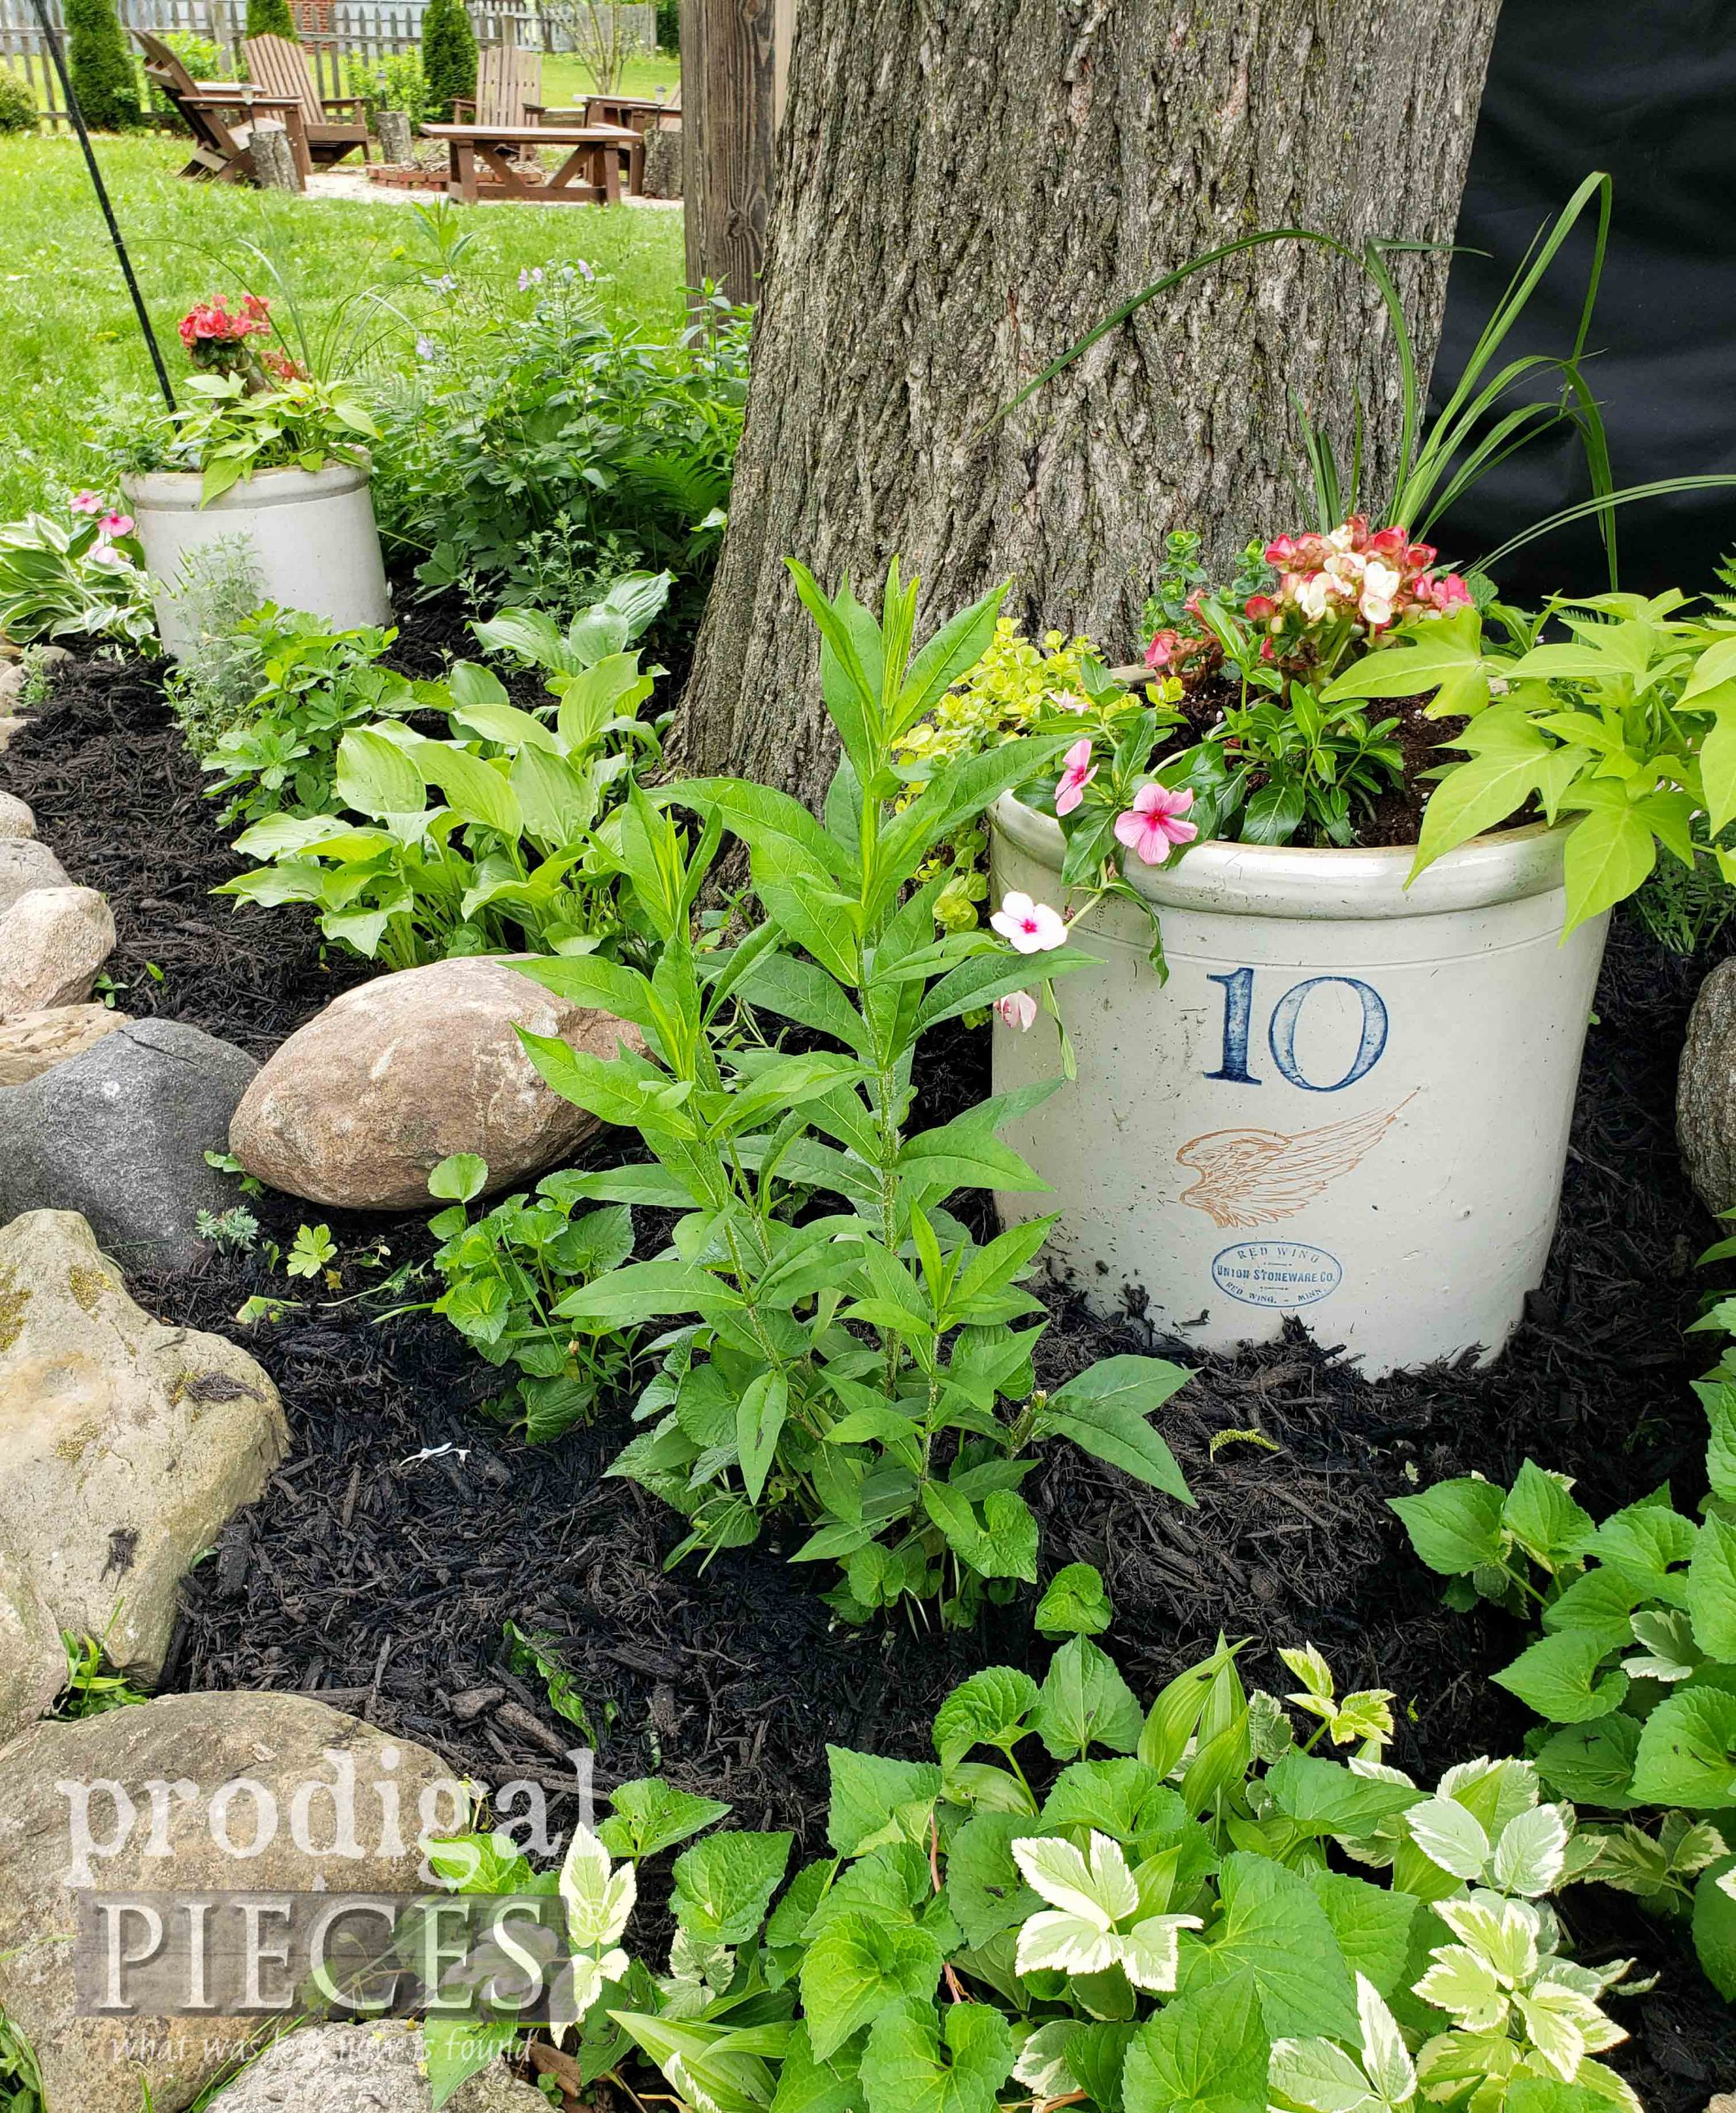 Farmhouse Crock Planter for Garden Decor and Texture by Larissa of Prodigal Pieces | prodigalpieces.com #prodigalpieces #garden